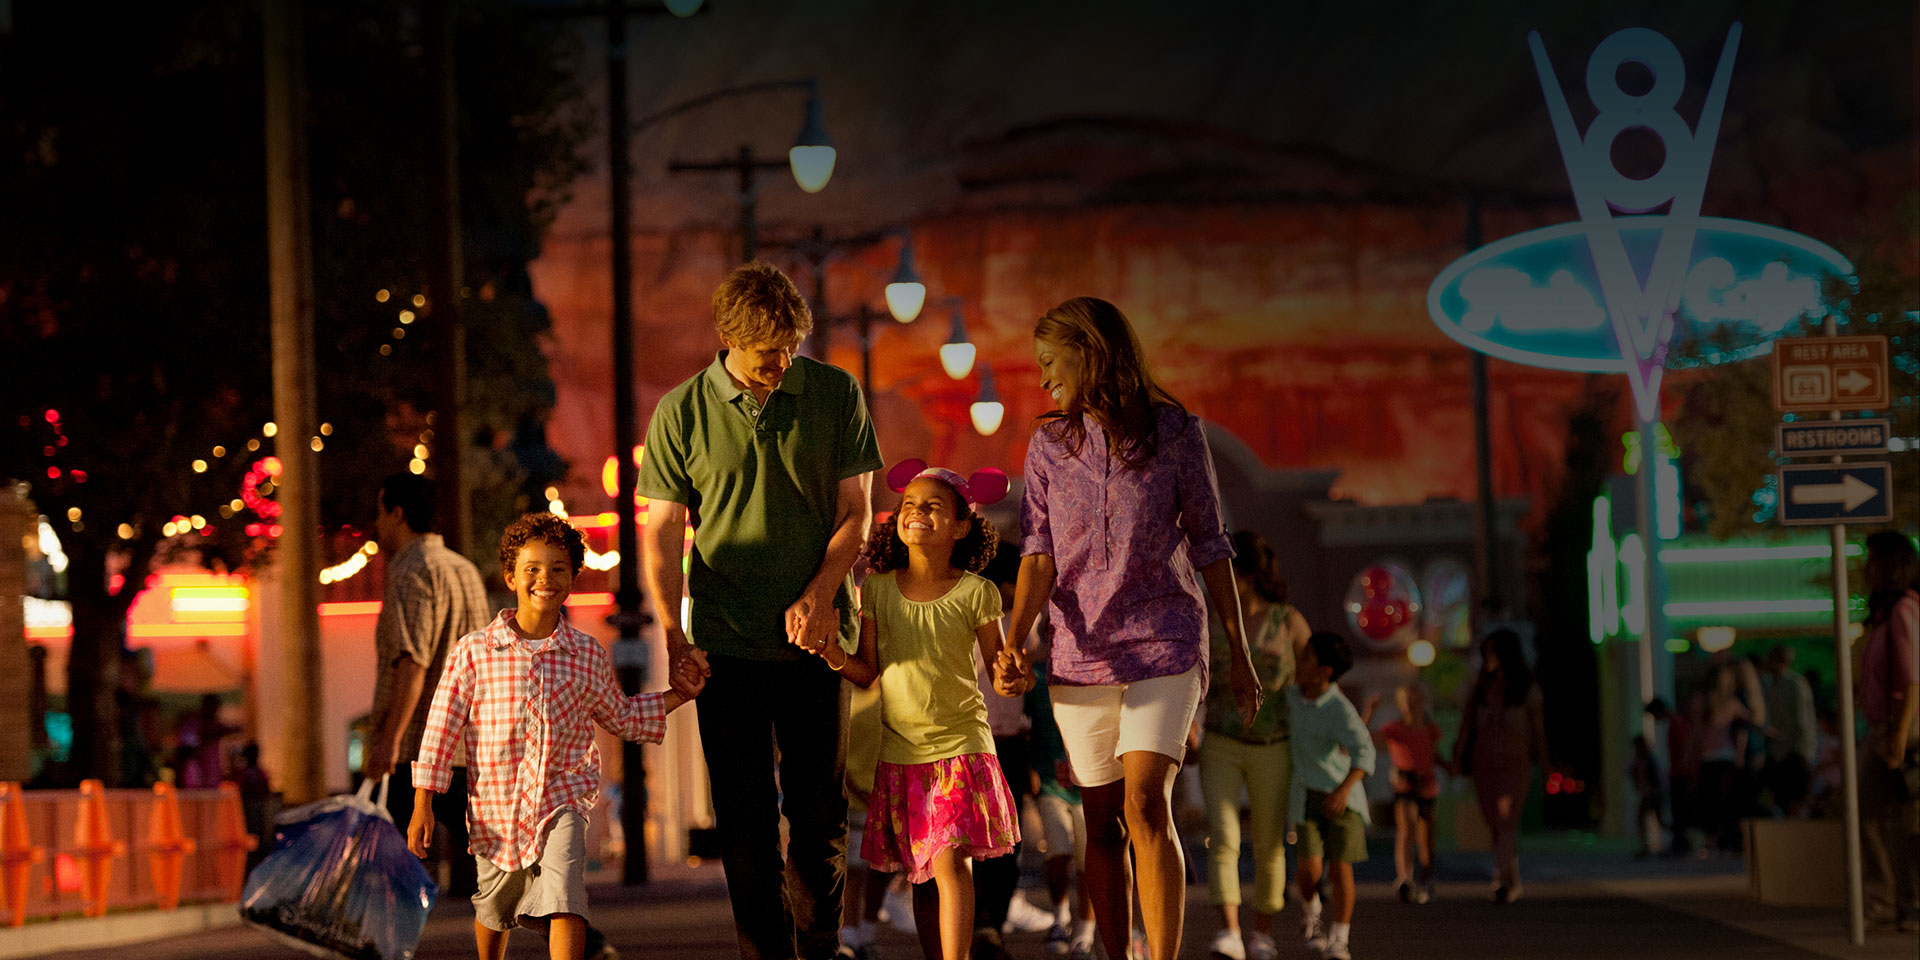 family walking on the street at night